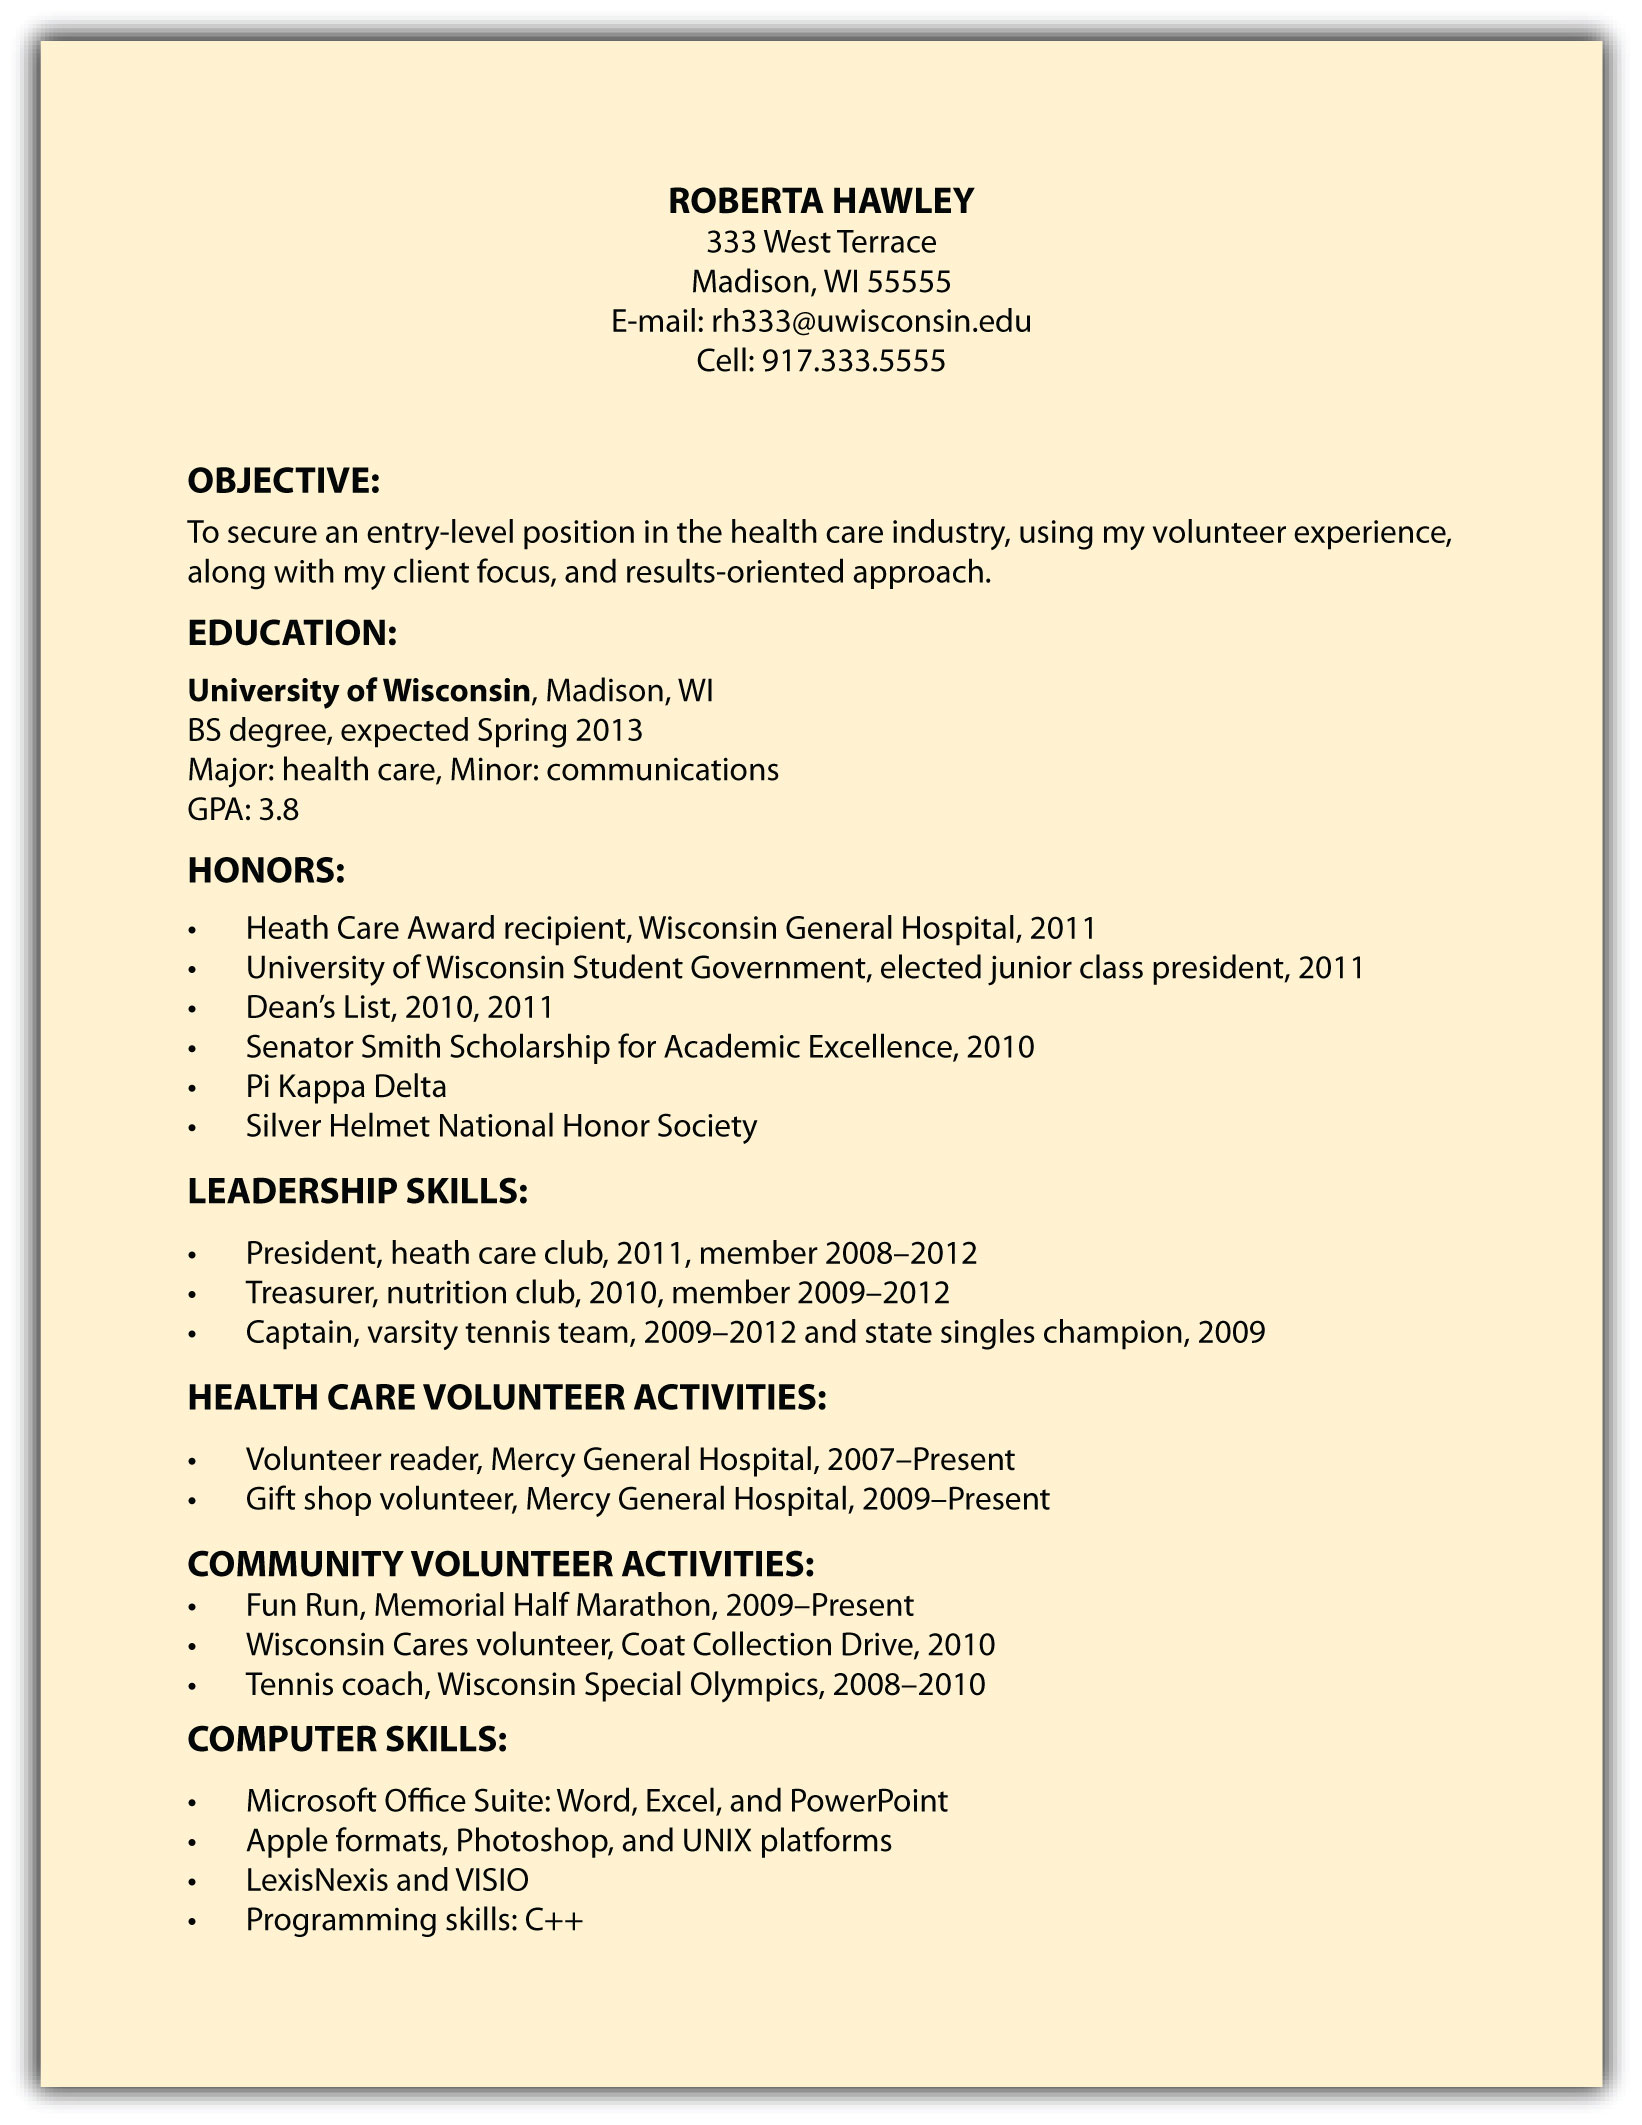 Functional Résumés  Functional Vs Chronological Resume